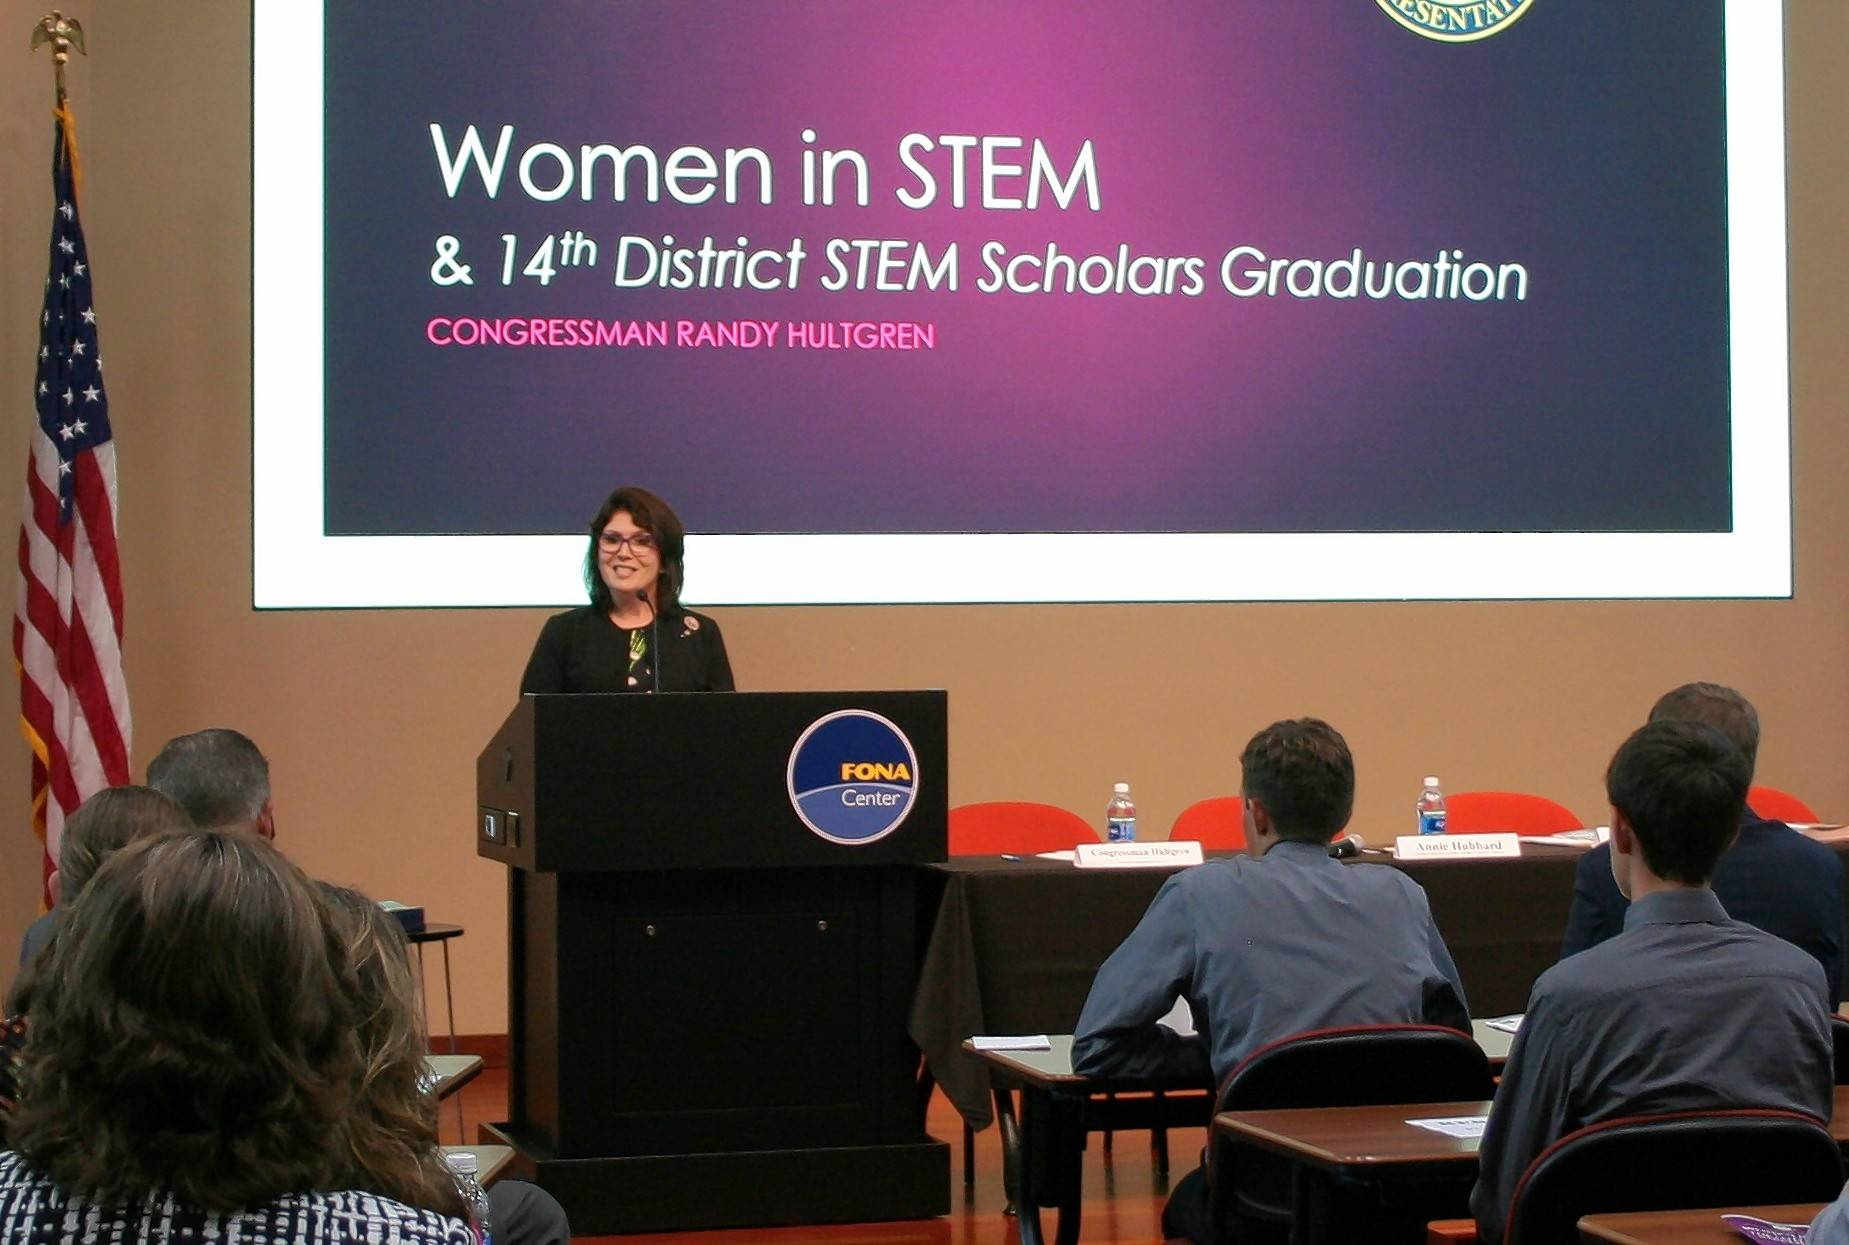 Lt. Gov. Sanguinetti delivers keynote address for the first STEM Scholars graduation event.